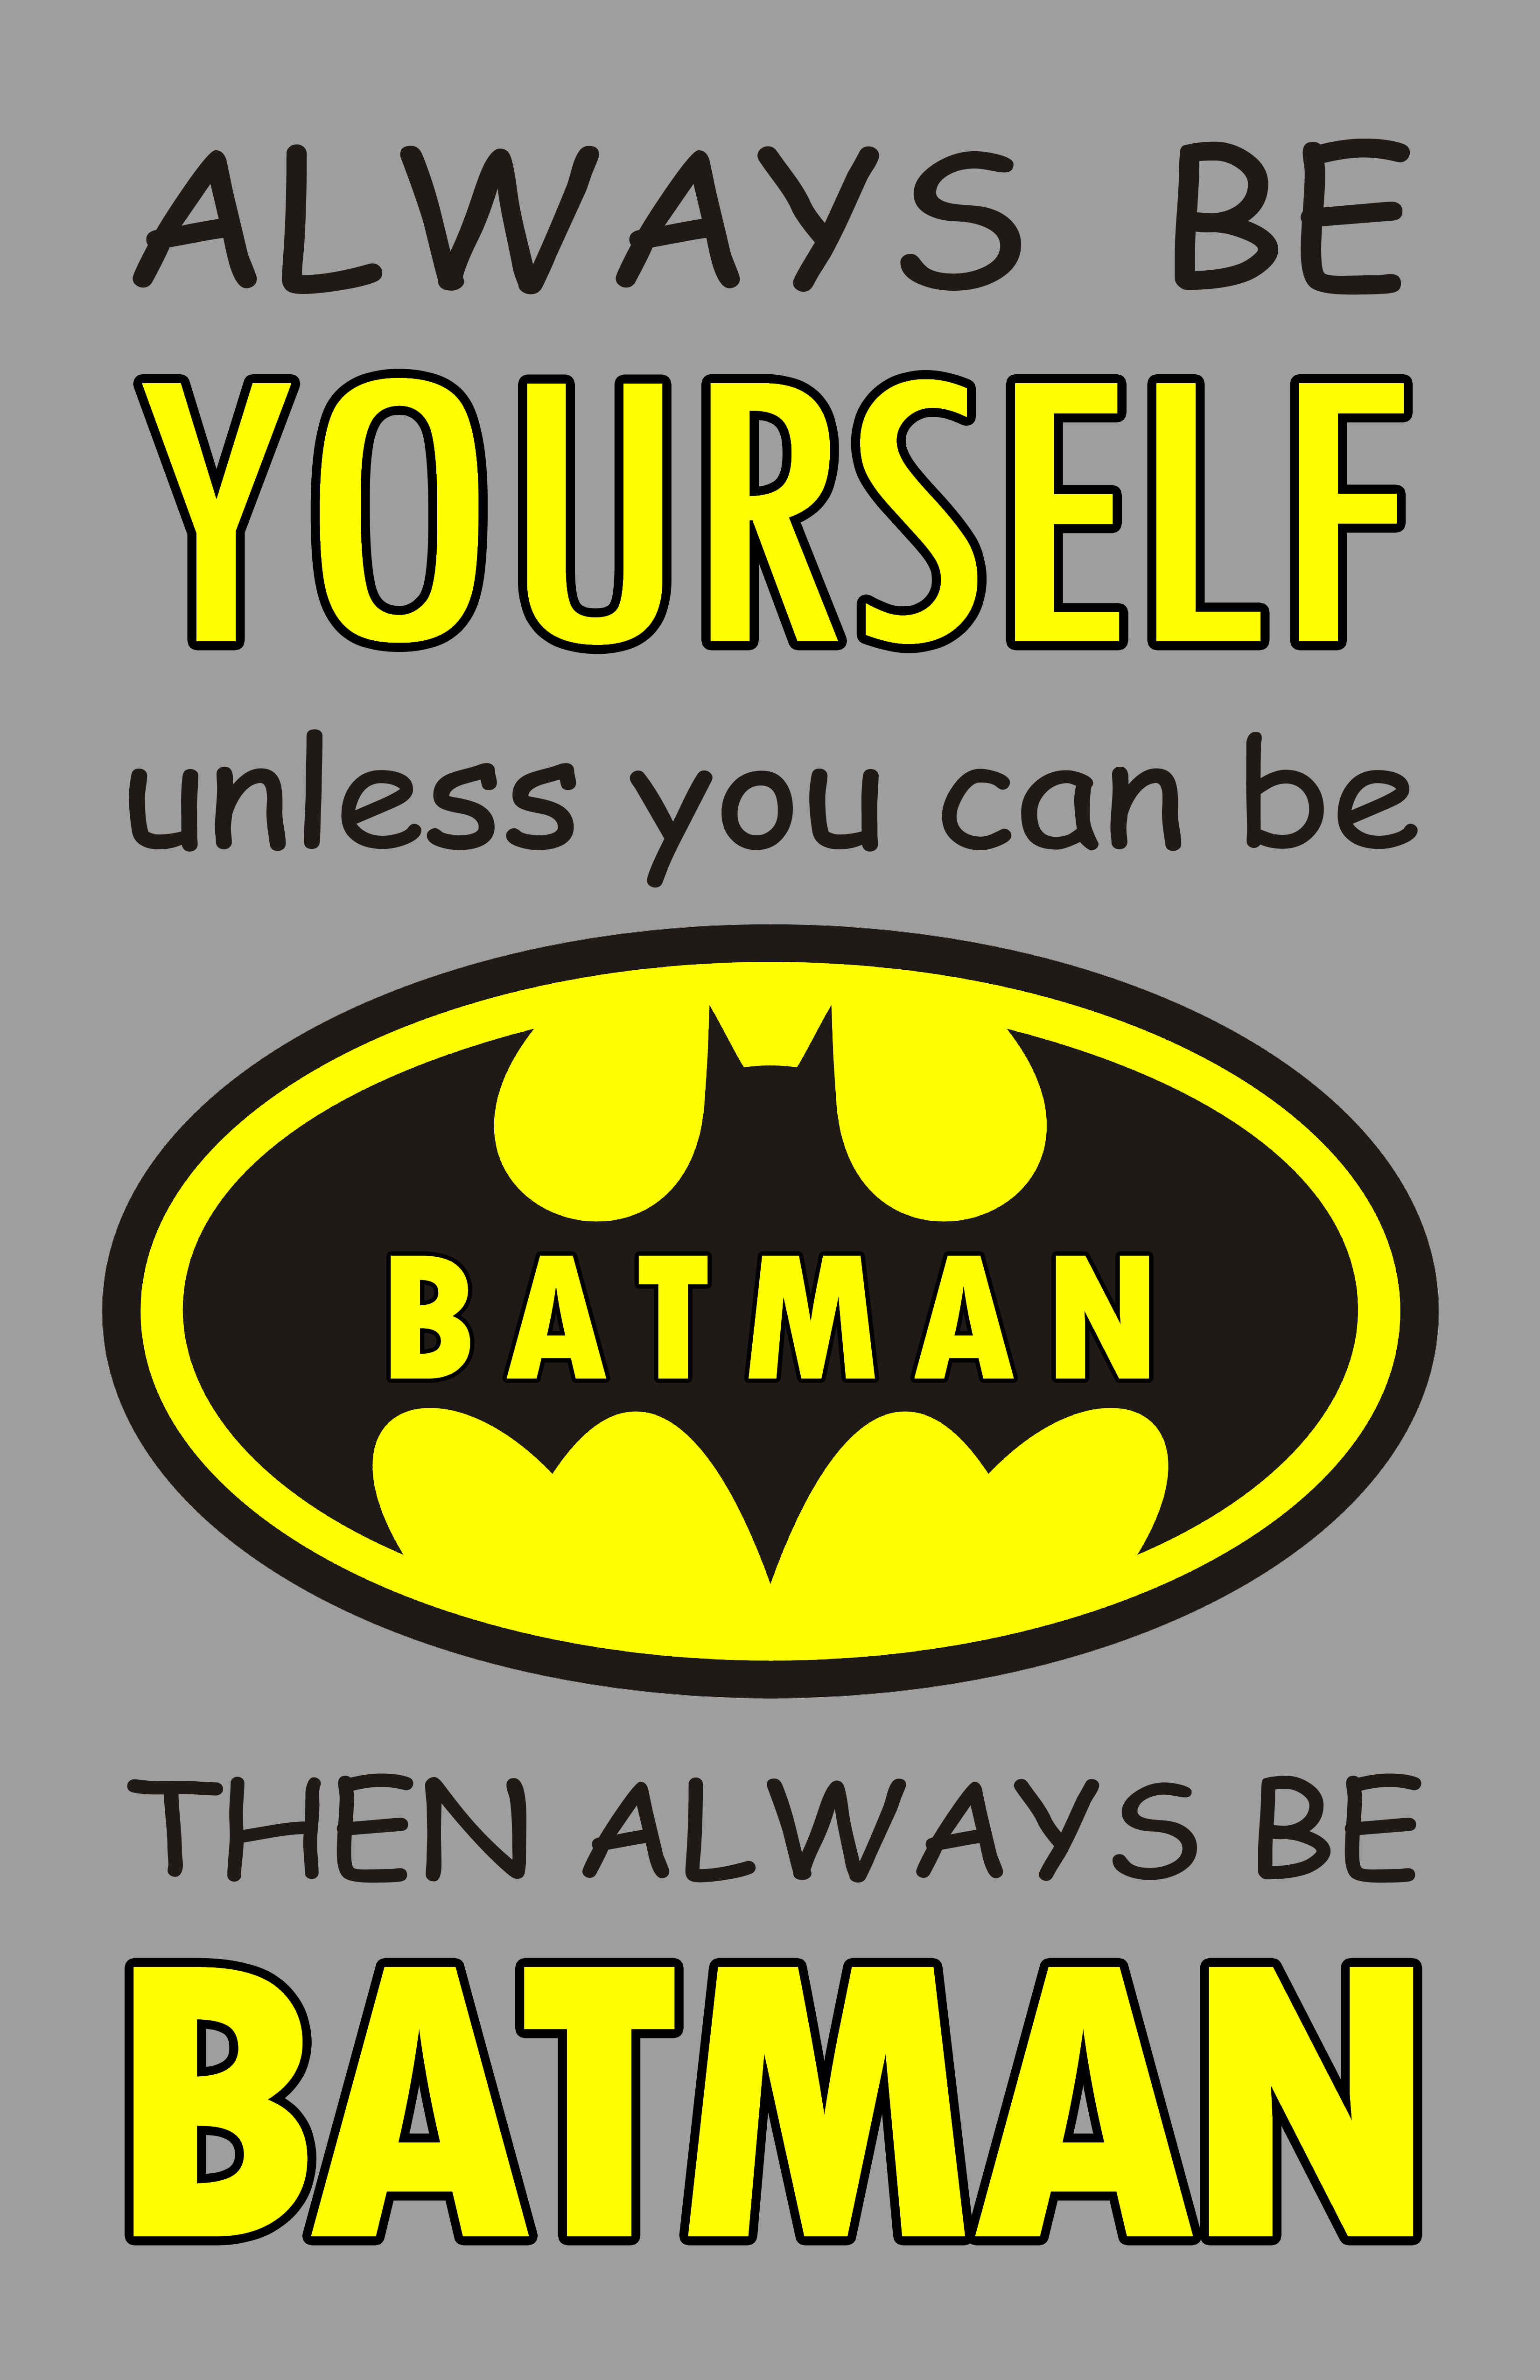 Can You Read Your Own Tarot Cards: Always Be Yourself Unless You Can Be Batman